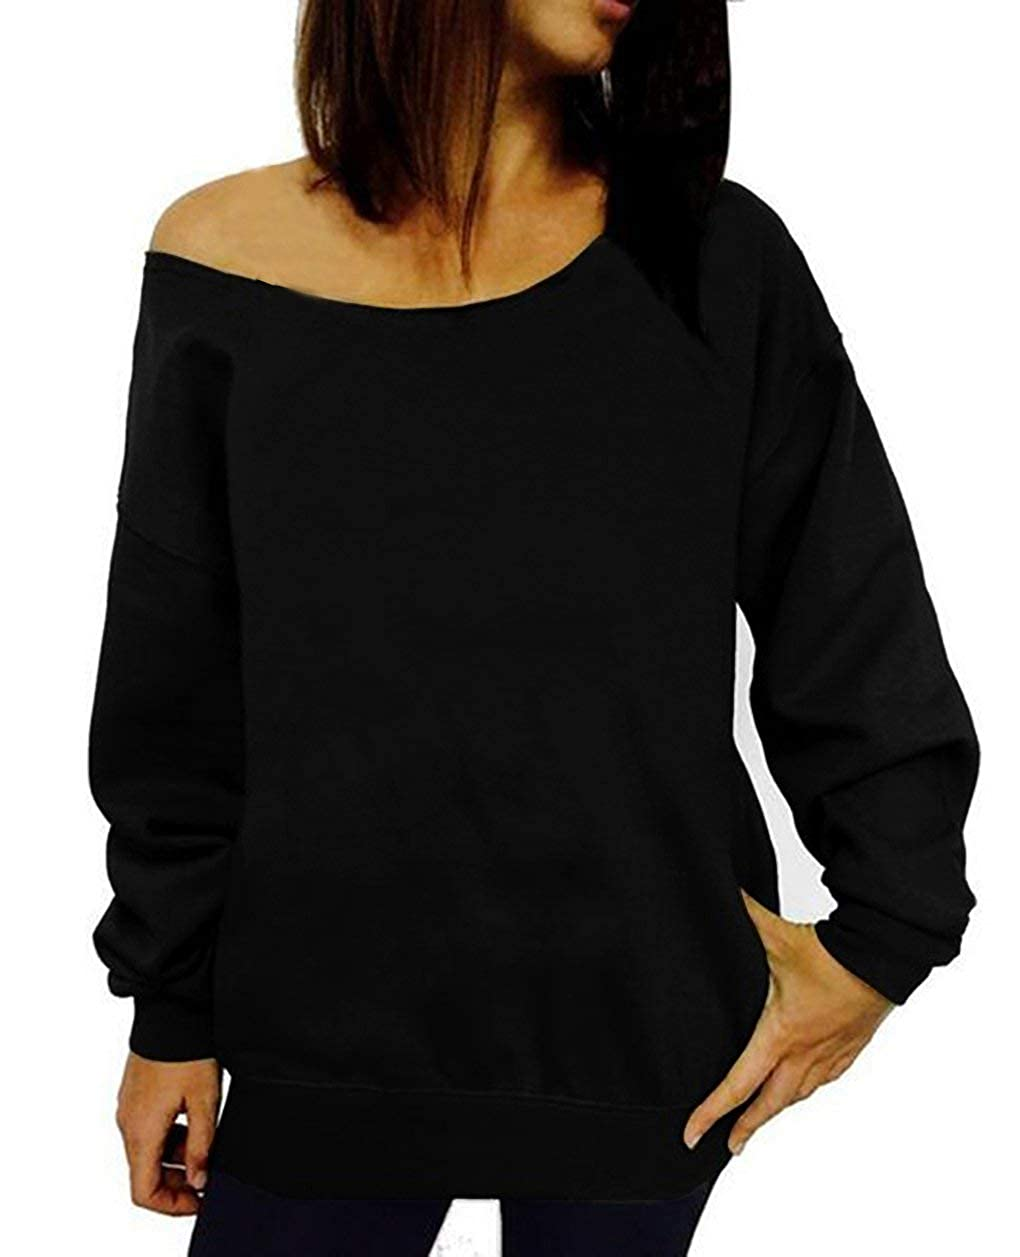 GSVIBK Womens Black Sweatshirt Off Shoulder Long Sleeve Sweatshirt Slouchy  Top Letter Printed Pullover Sweatshirts at Amazon Women s Clothing store  90a2538949